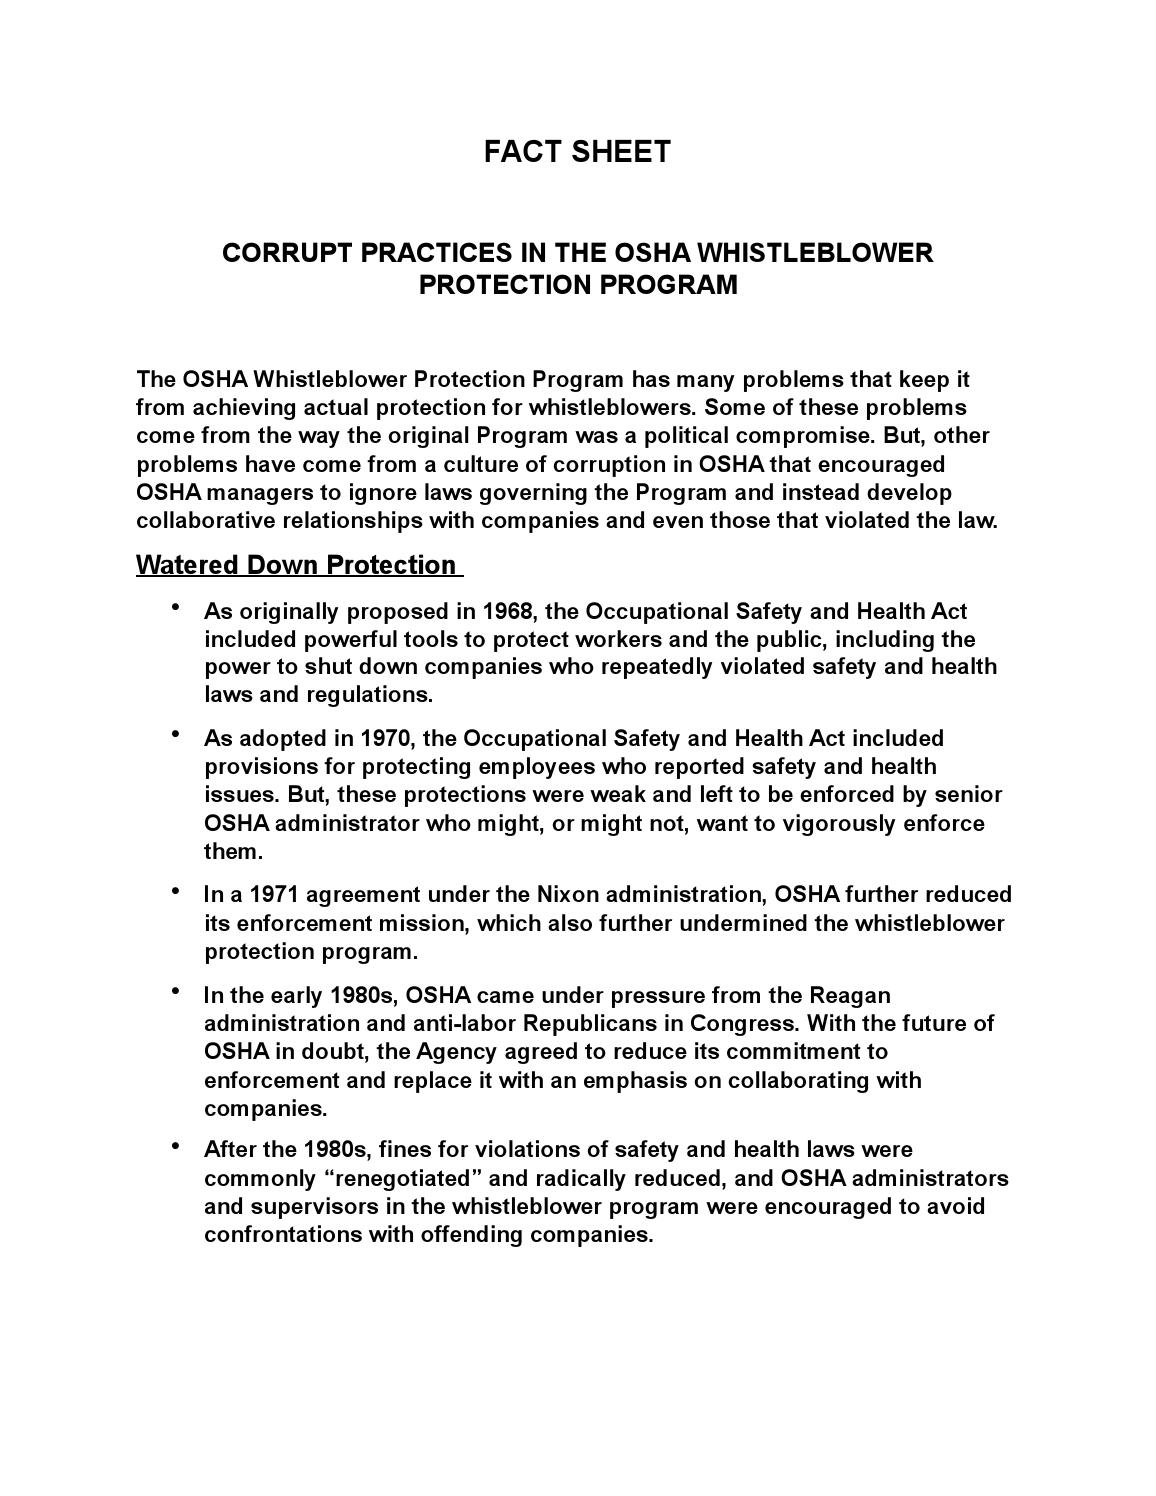 Stunning Whistleblowing Policy Template Photos - Professional Resume ...